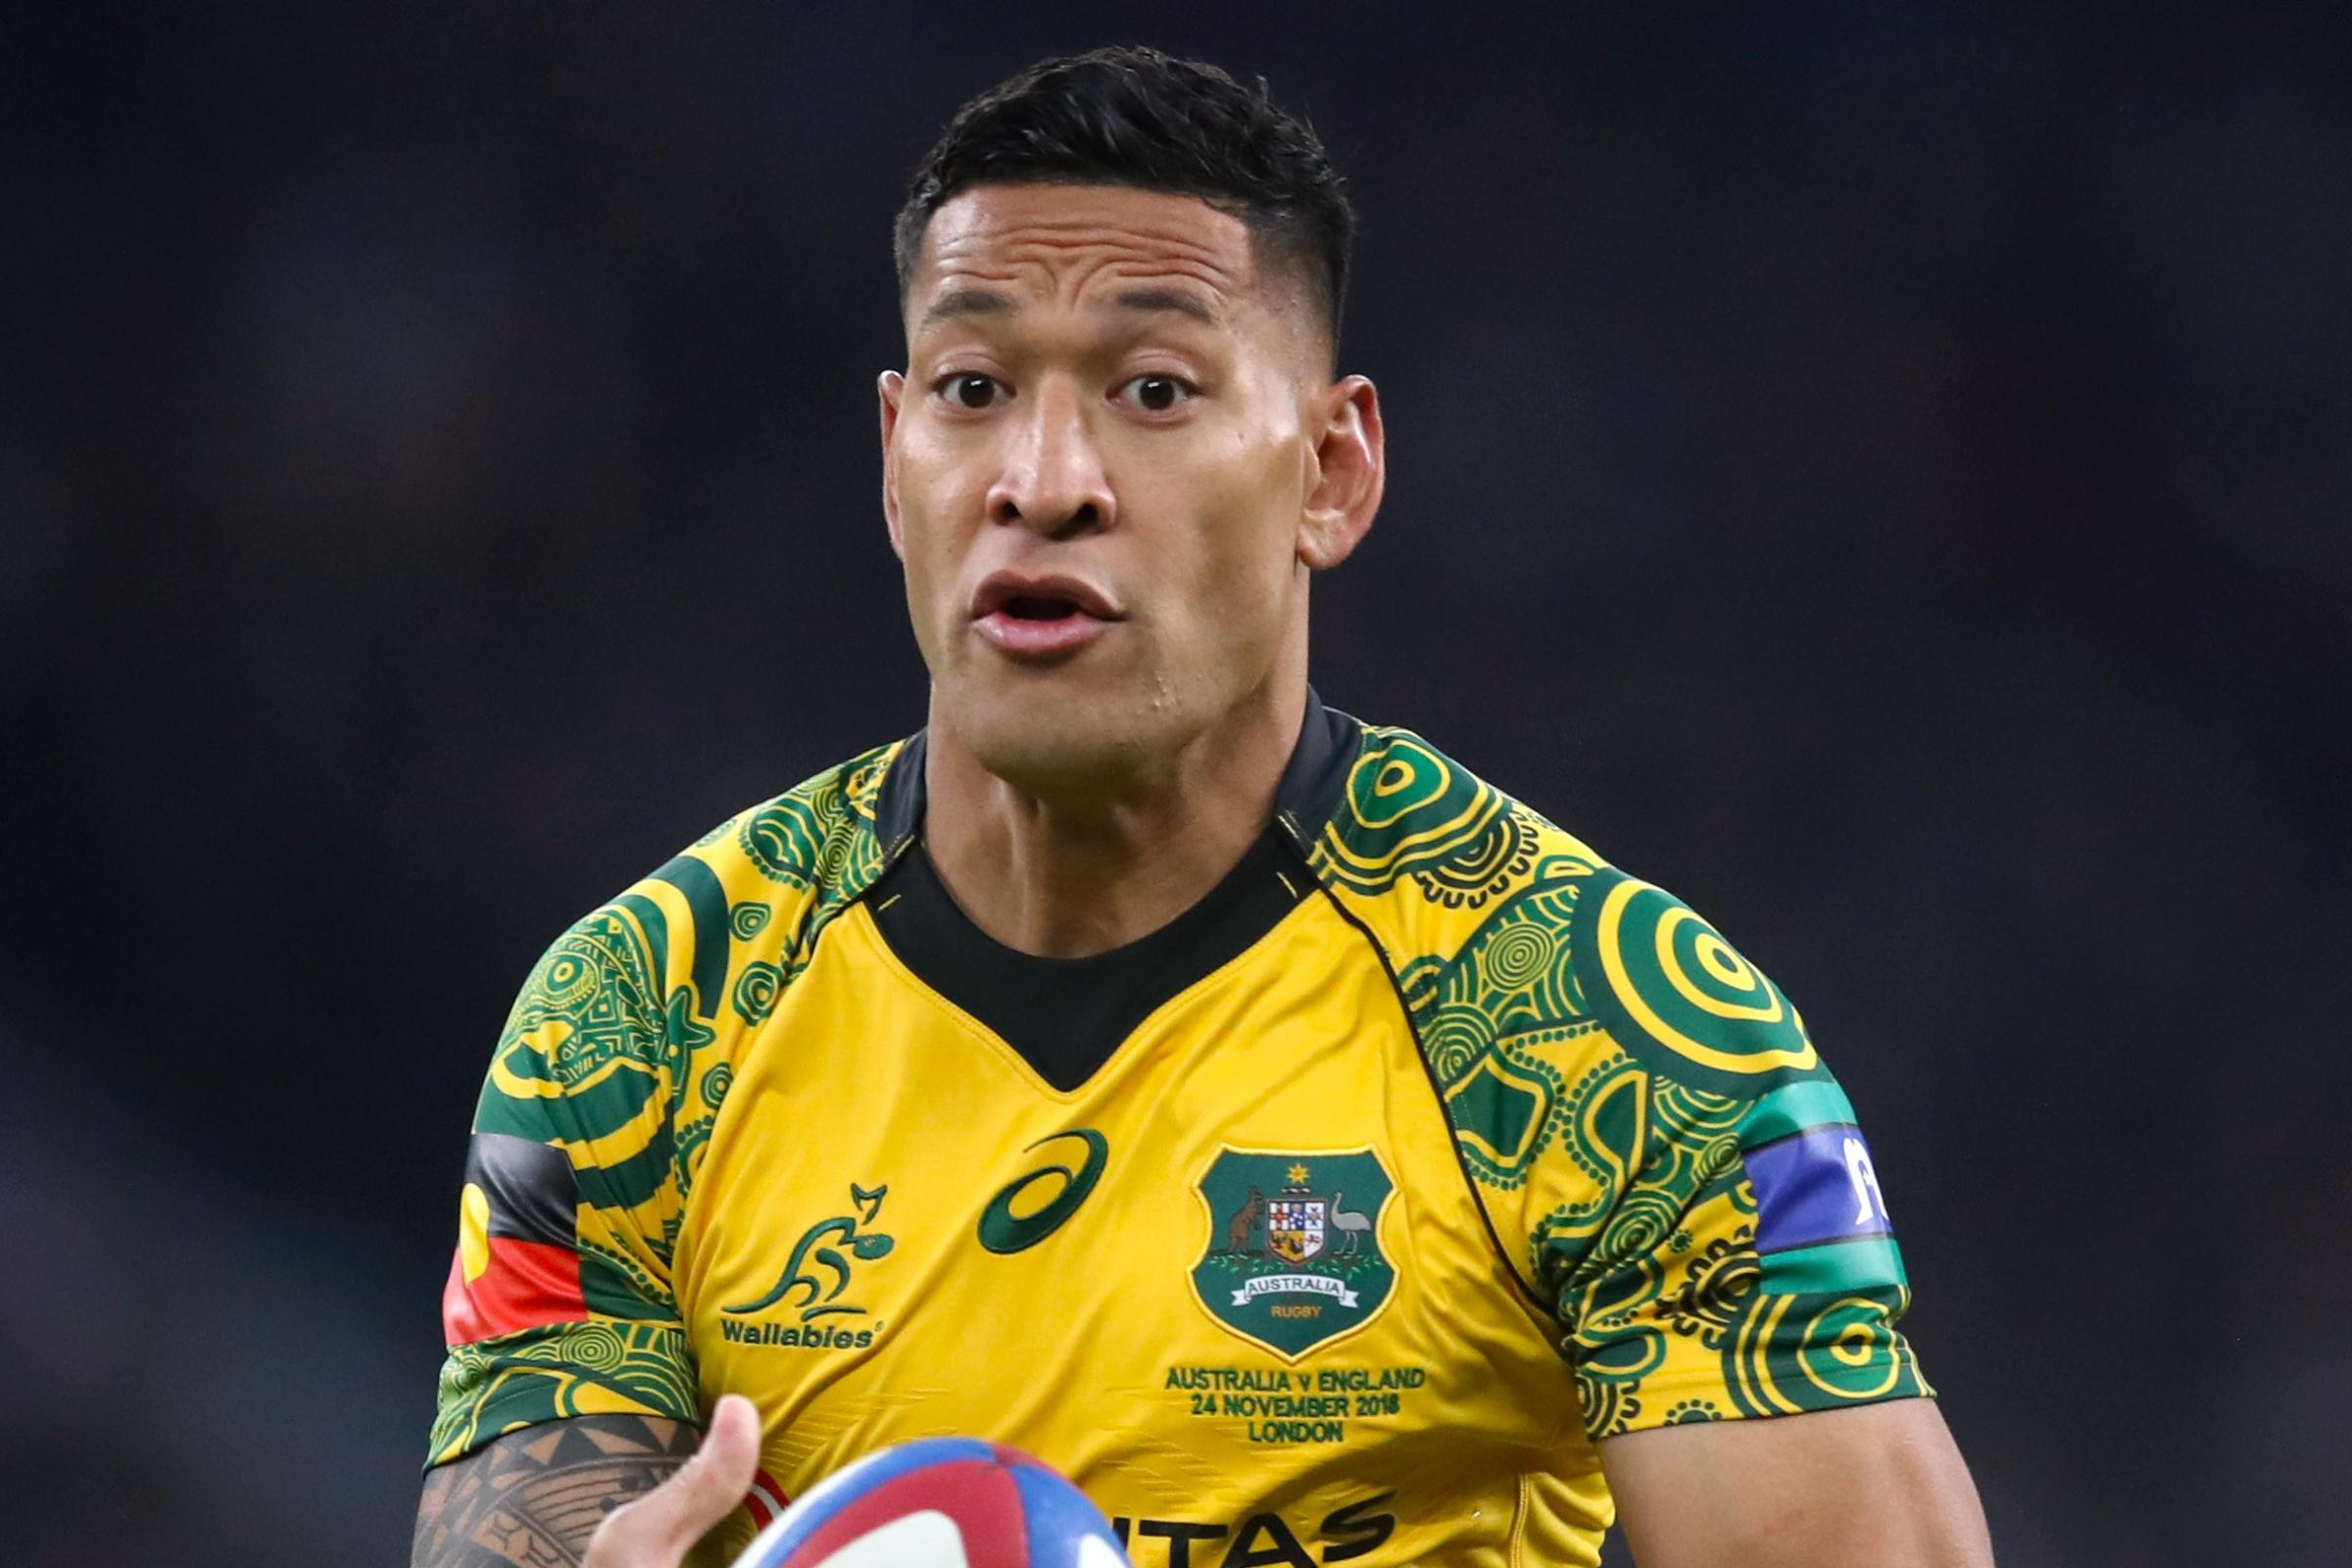 Israel Folau has been found in breach of the Rugby Australia code of conduct